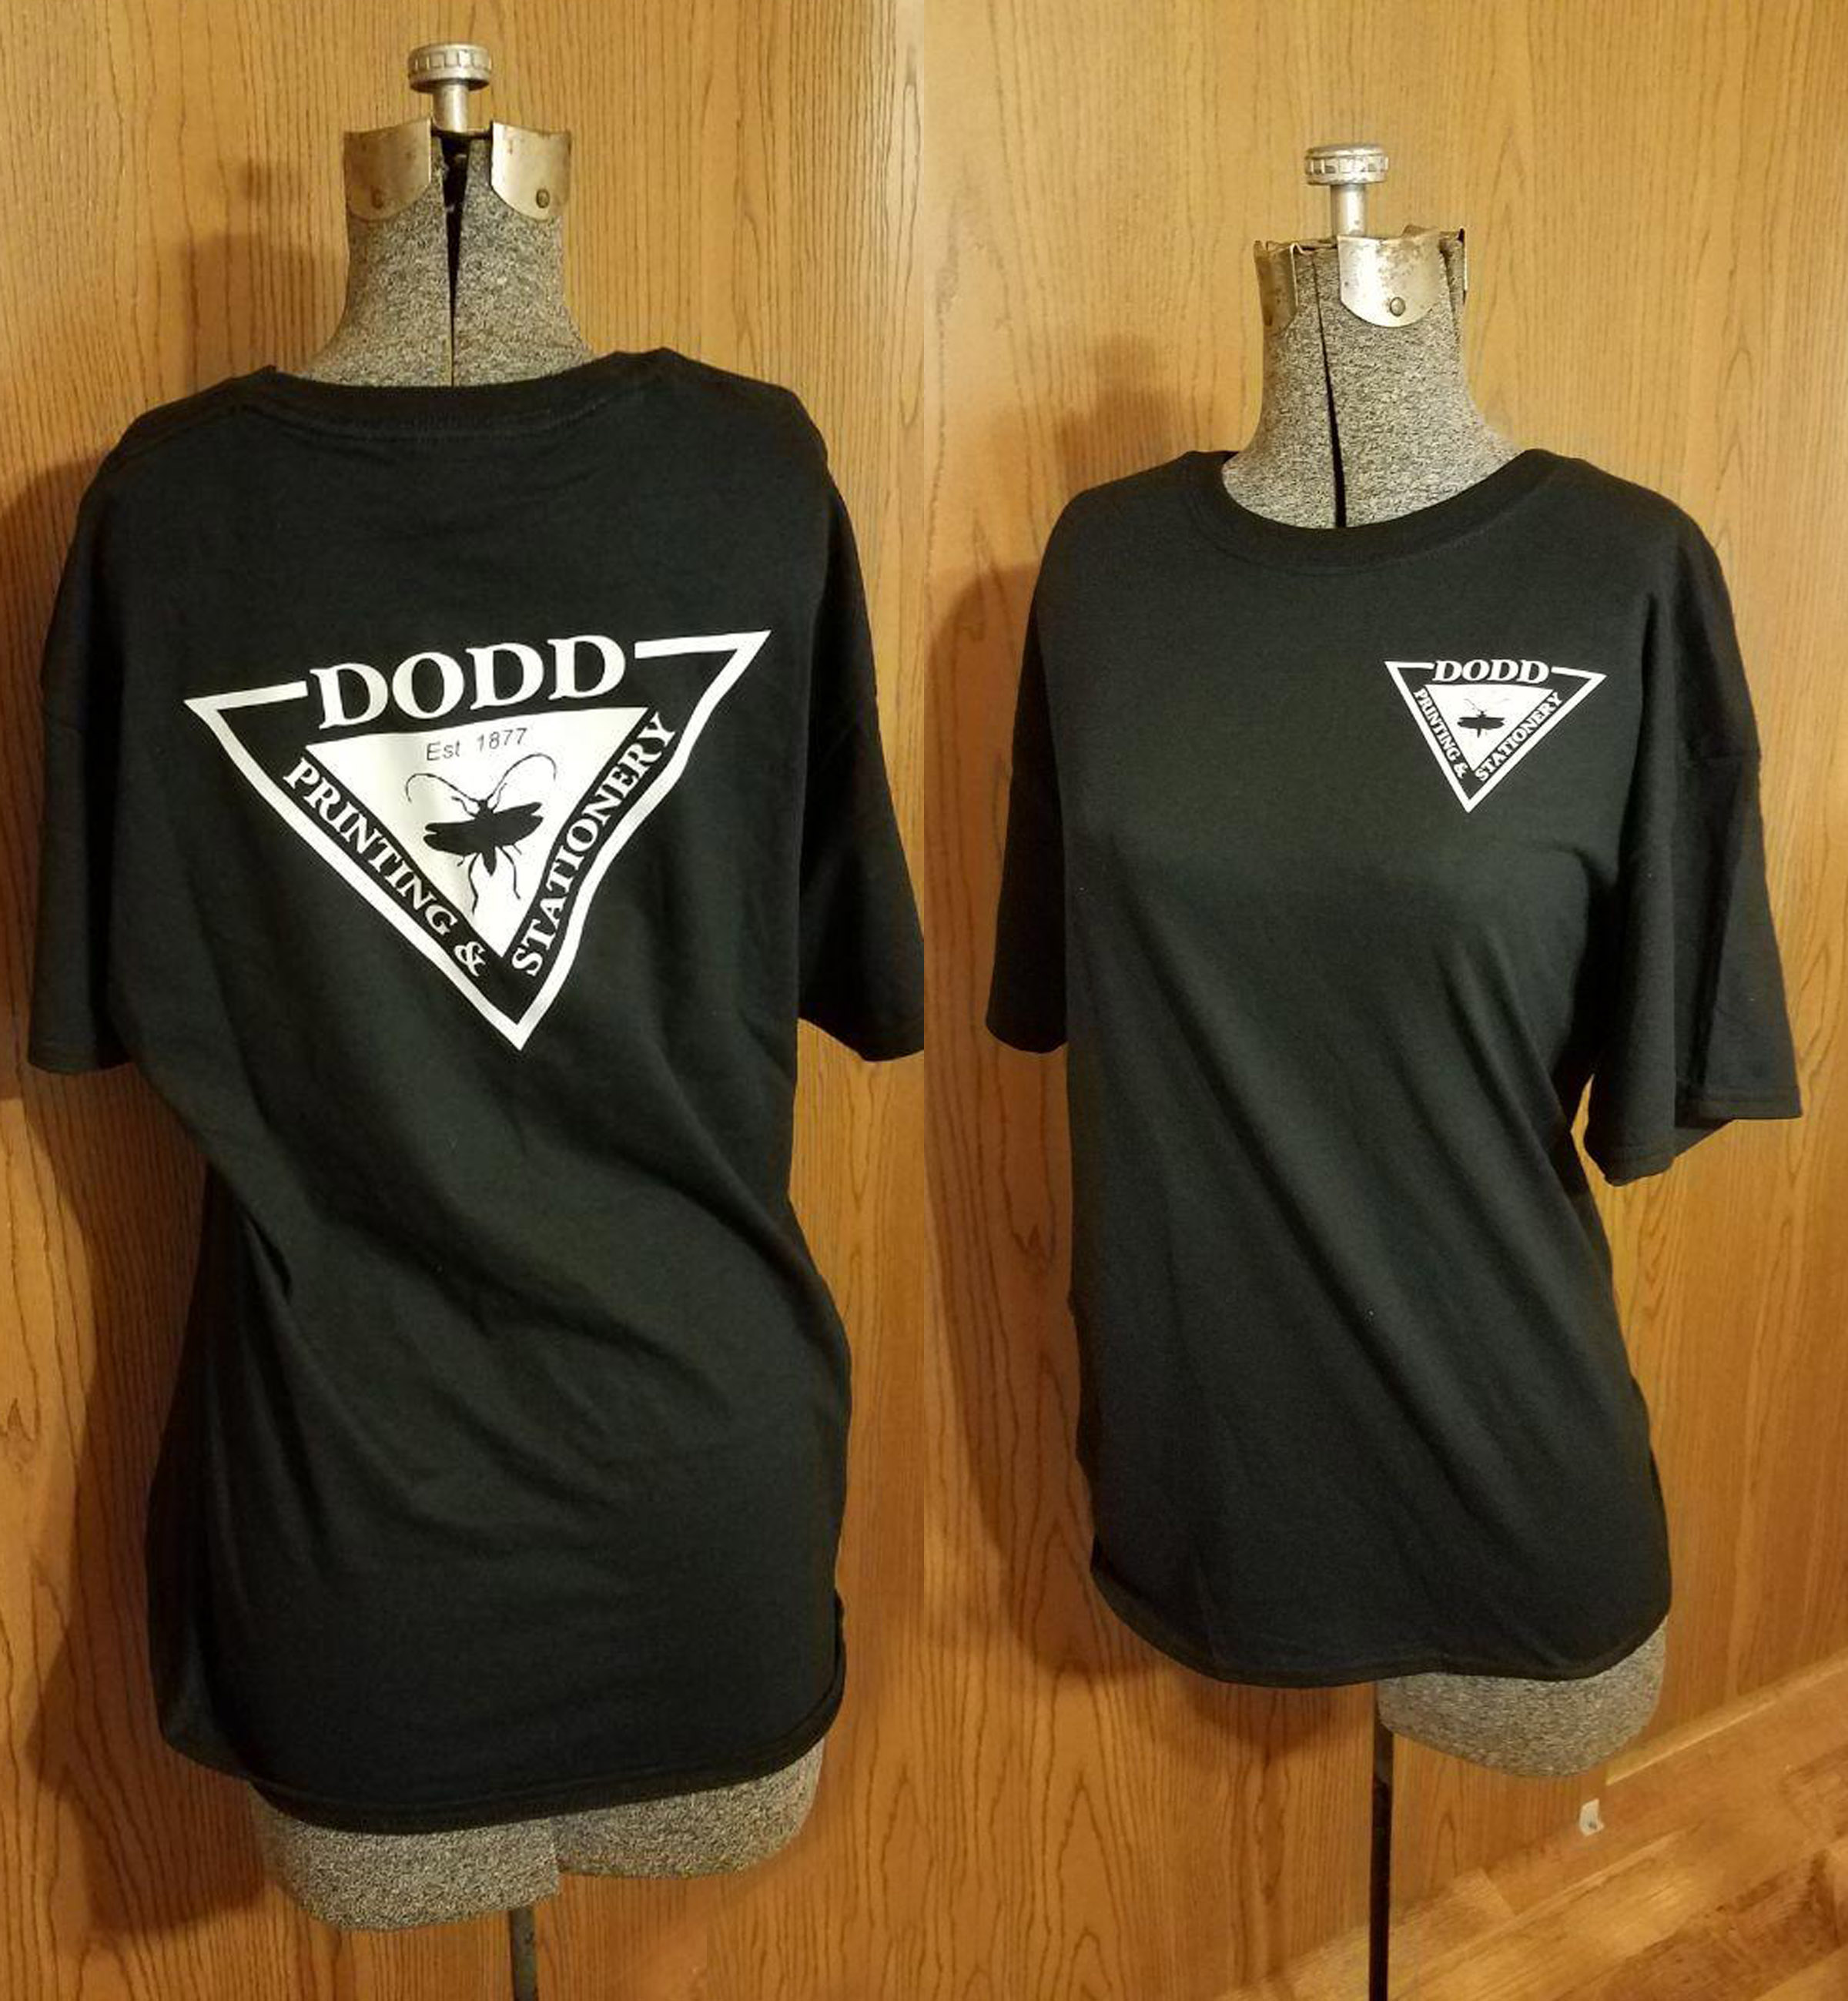 Dodd Black 2 Sided